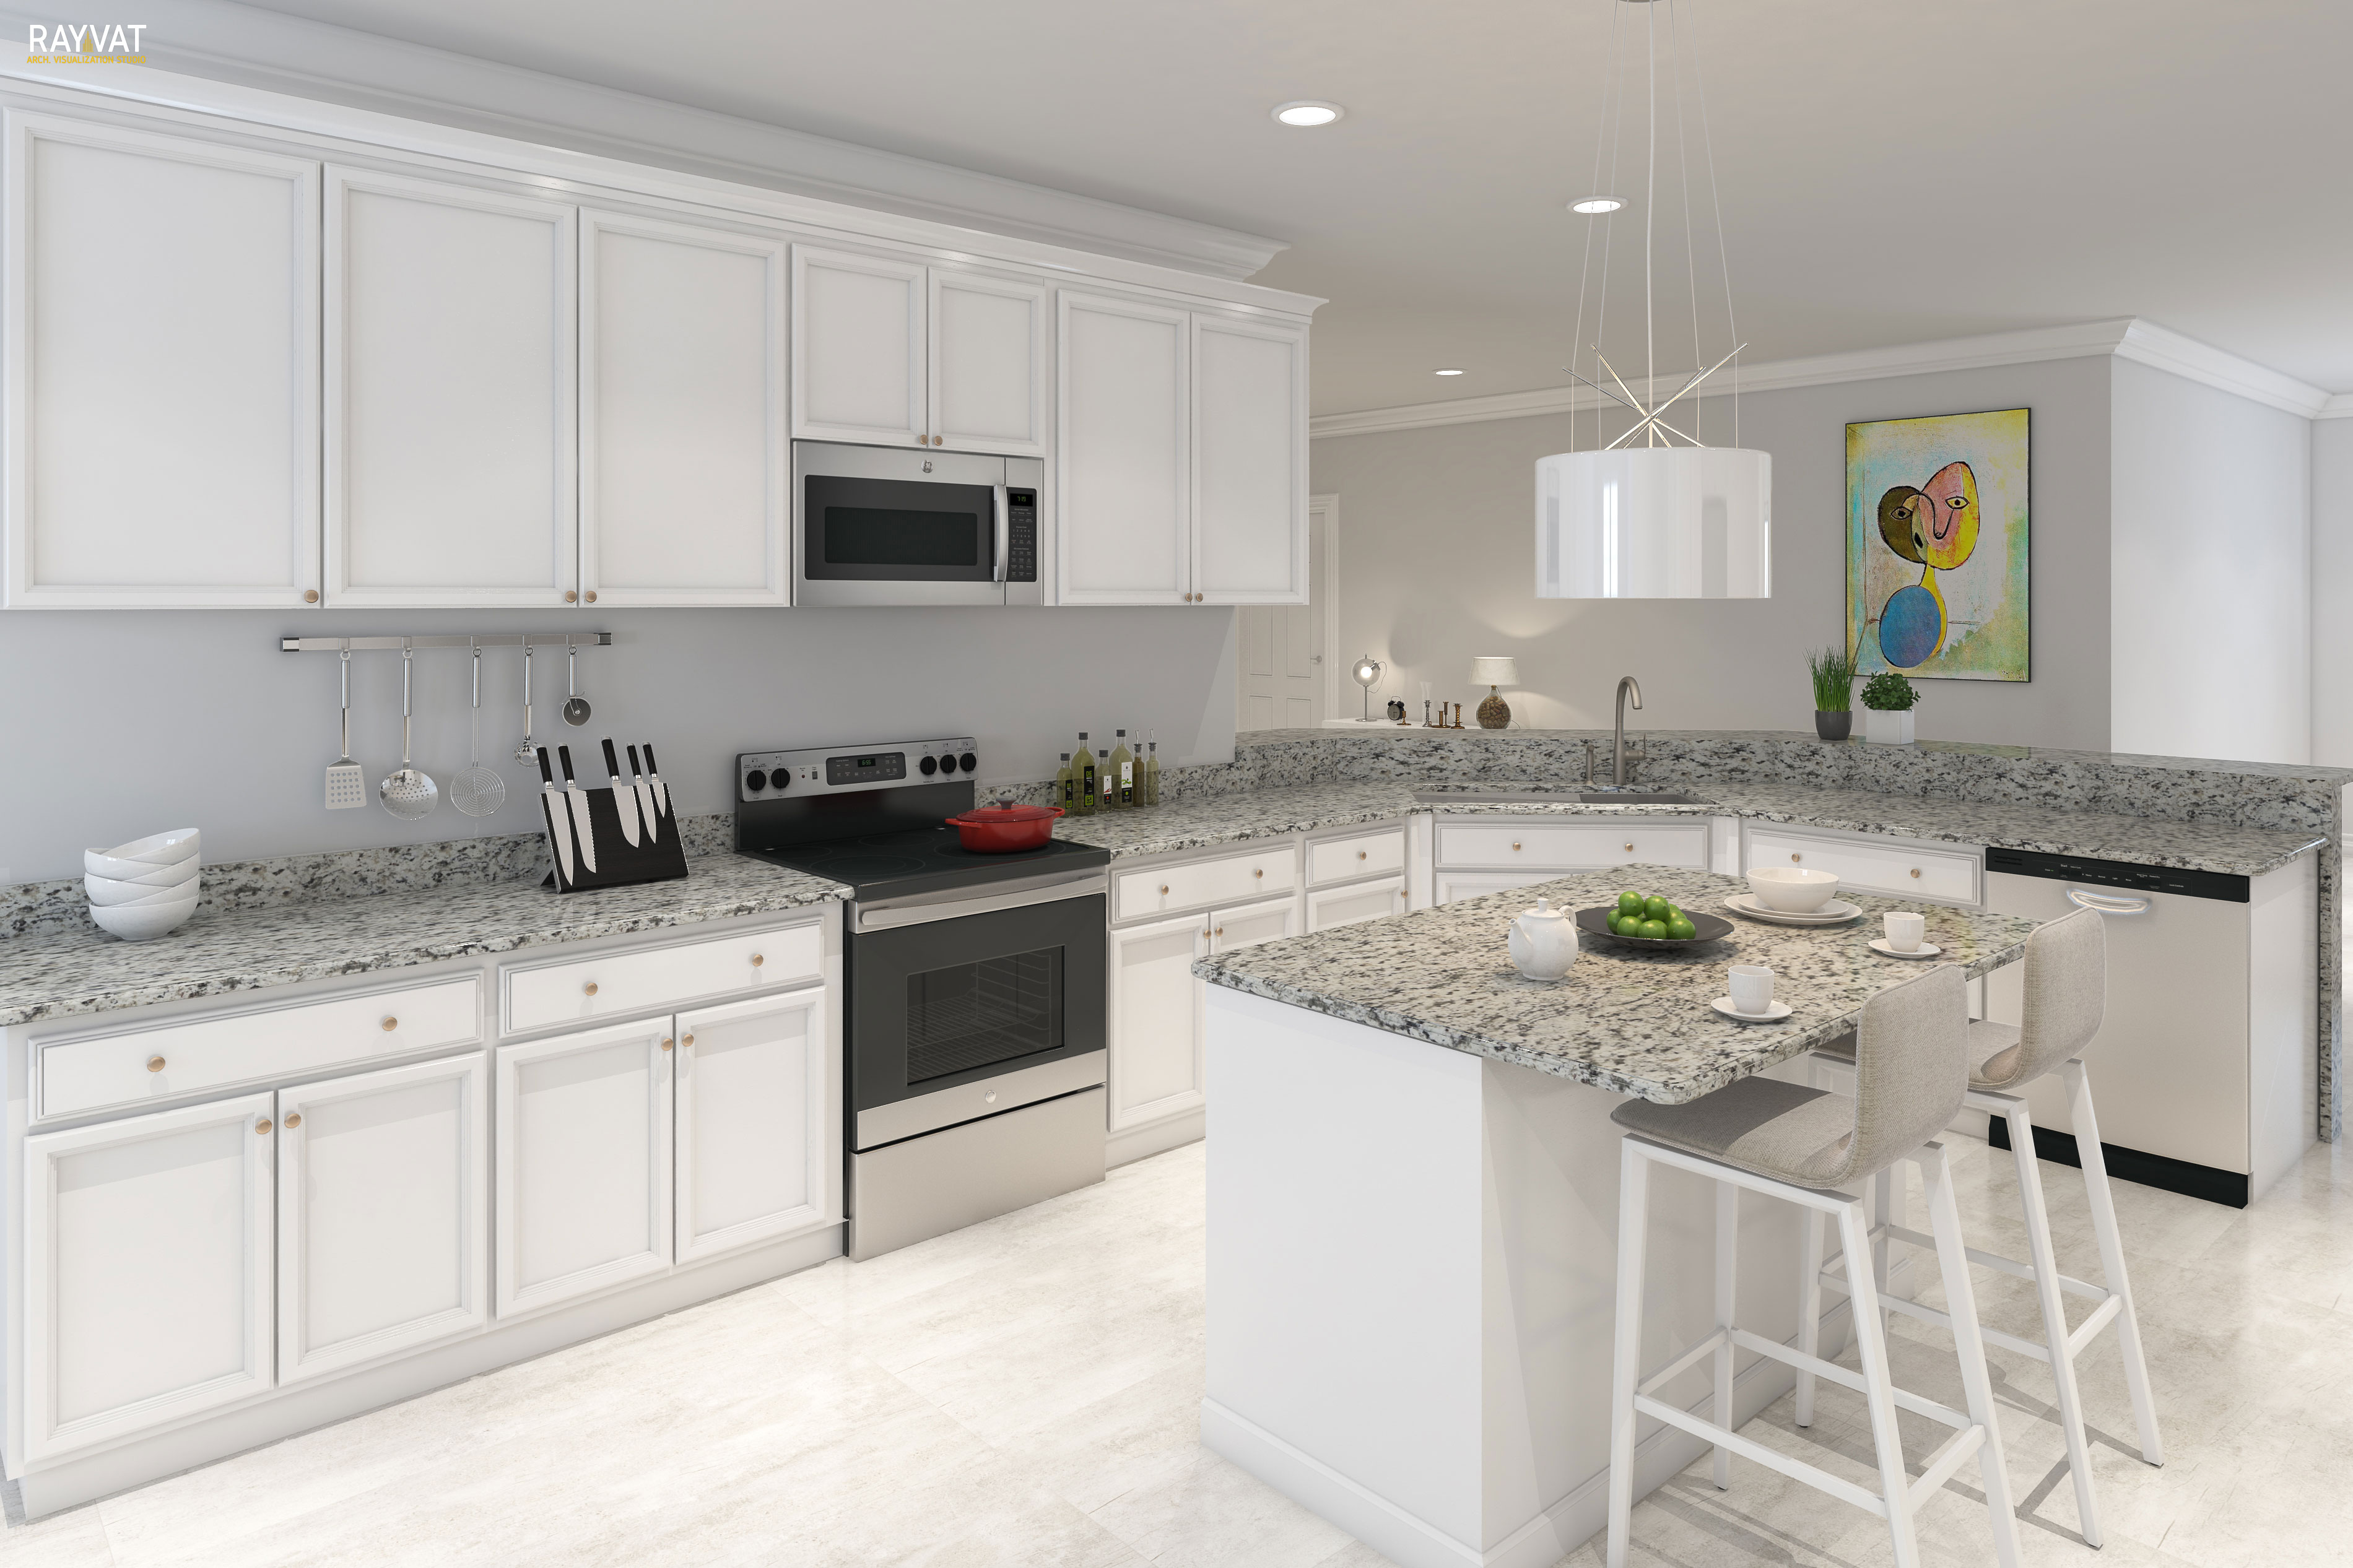 3D Rendering Services Rockford, Illinois